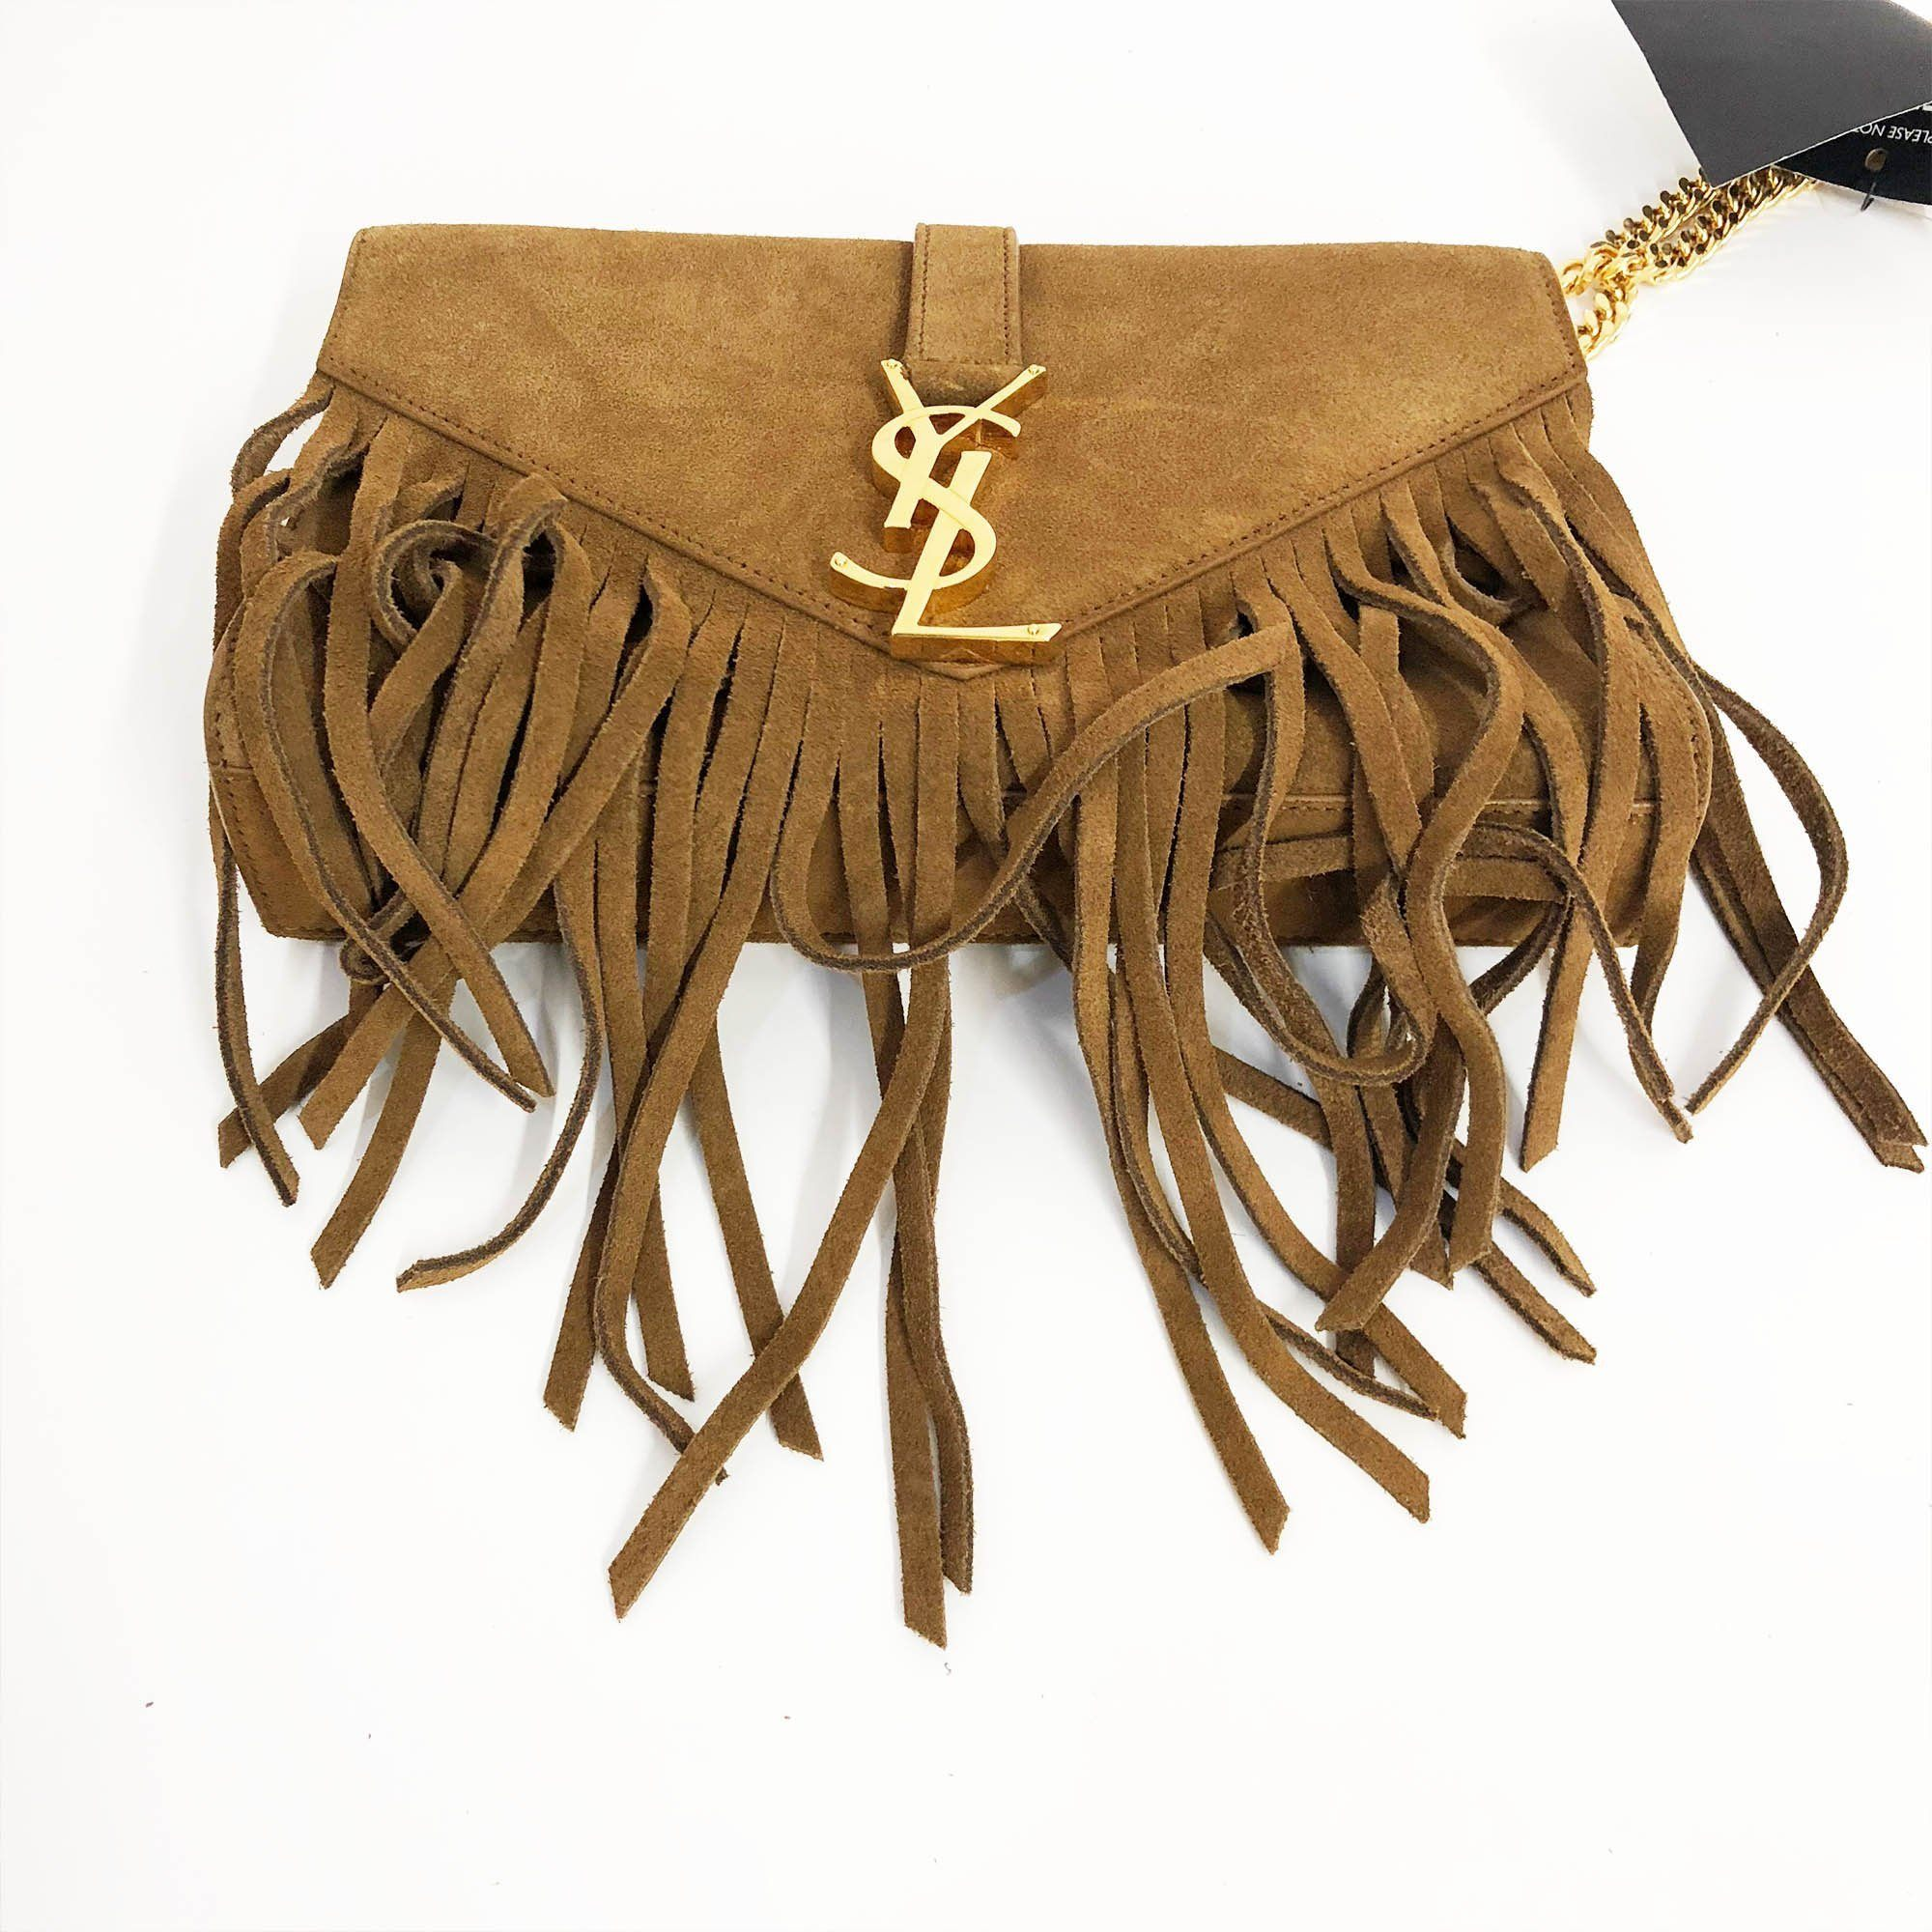 Yves Saint Laurent Suede Fringe Monogram Crossbody Bag